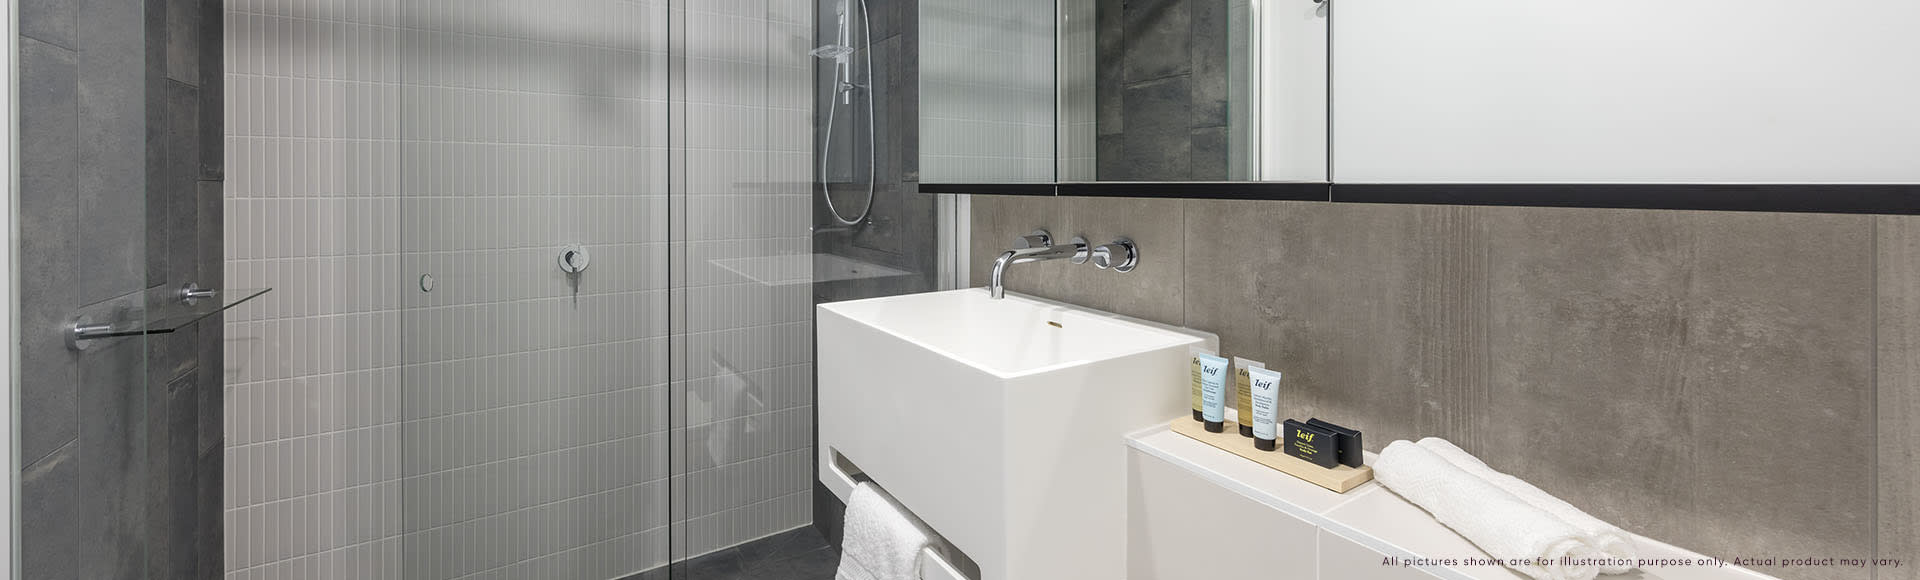 Avani Box Hill 1 Bedroom Superior Suite Bathroom 1920x580px